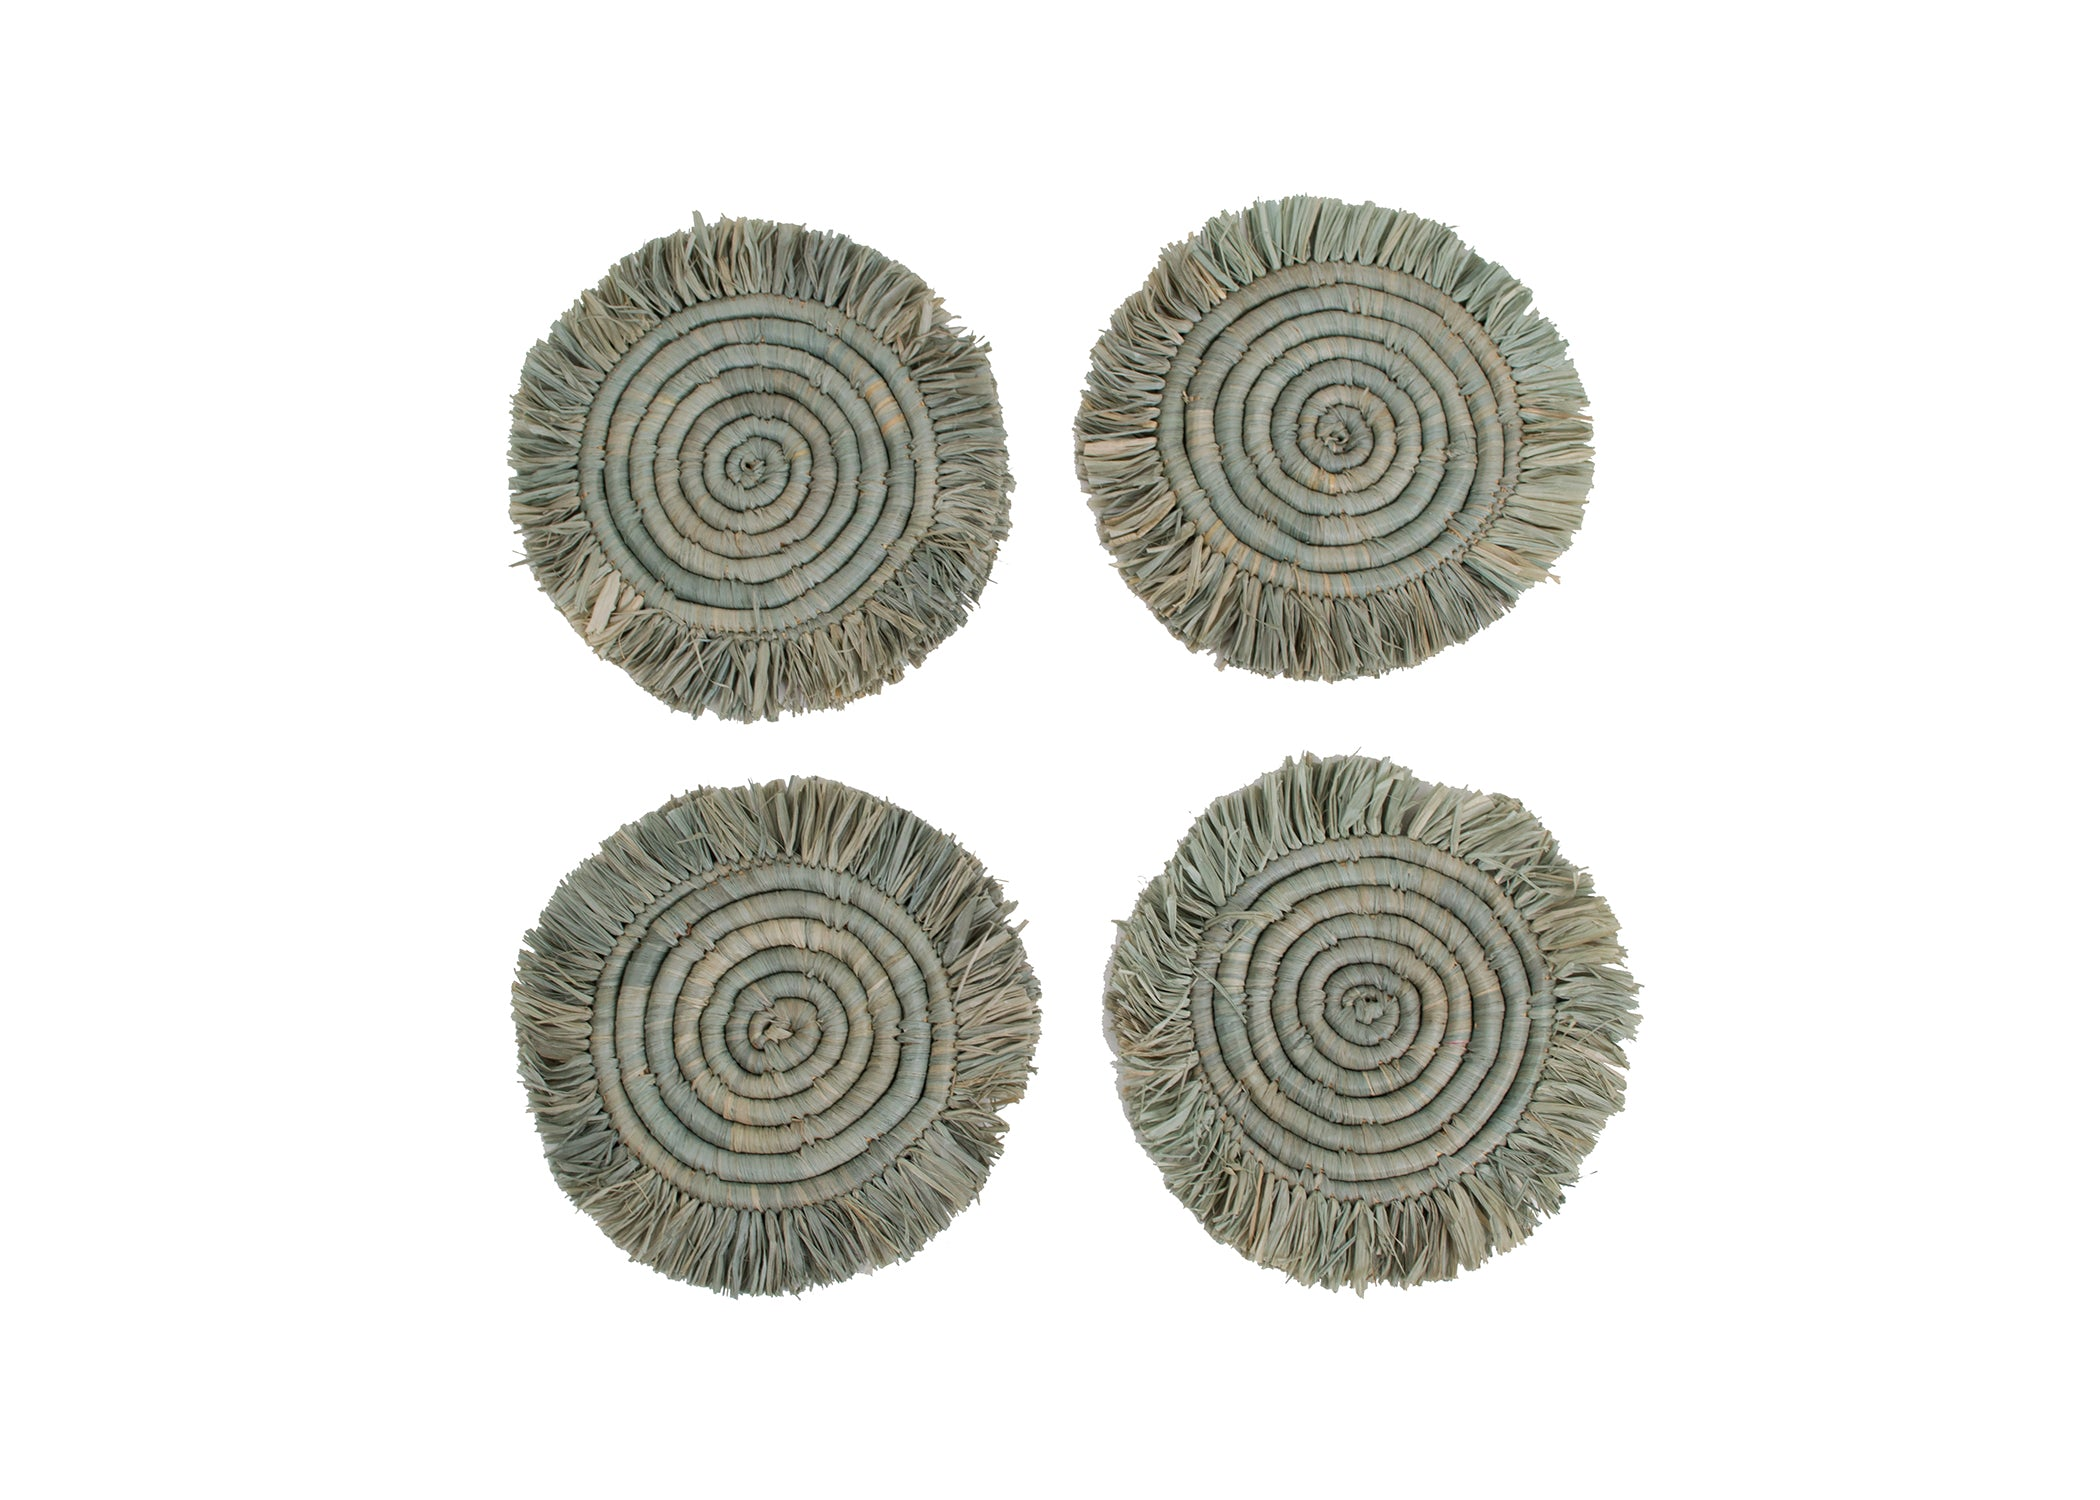 Opal Gray Fringed Raffia Drink Coasters, Set of 4 - KAZI - Artisan made high quality home decor and wall art